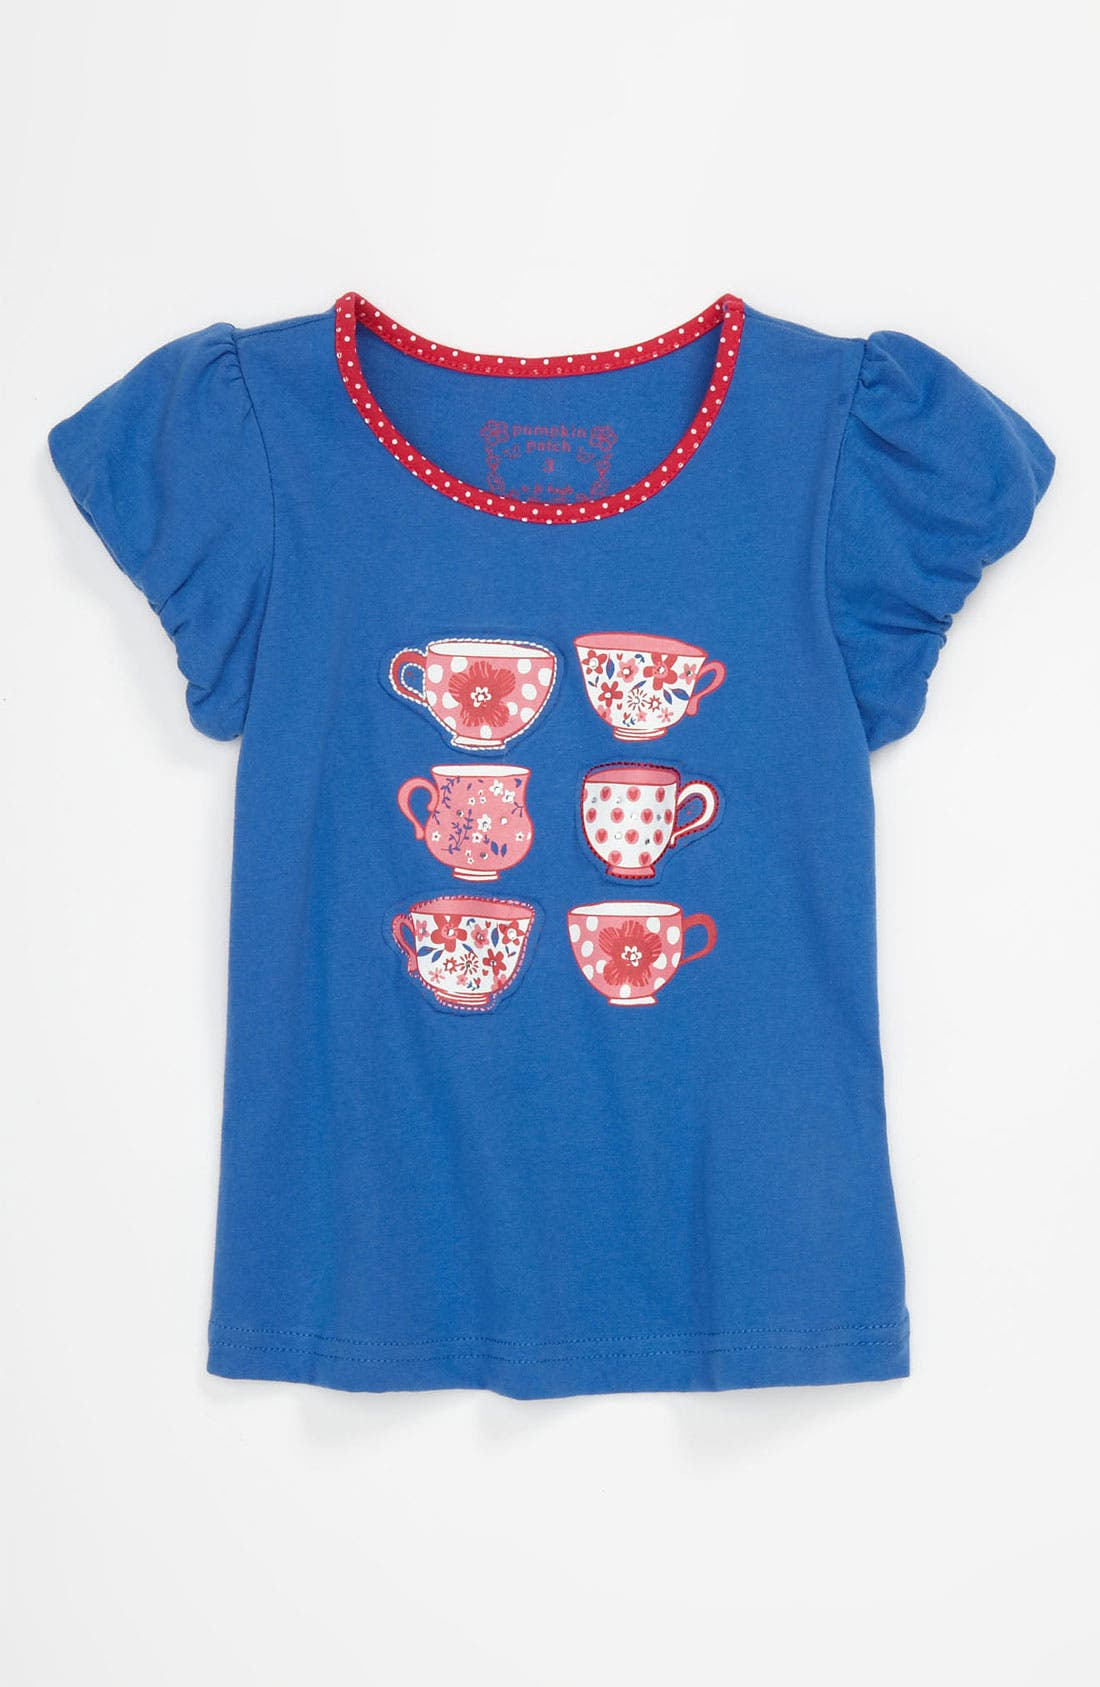 Alternate Image 1 Selected - Pumpkin Patch 'Teacup' Shirt (Toddler)